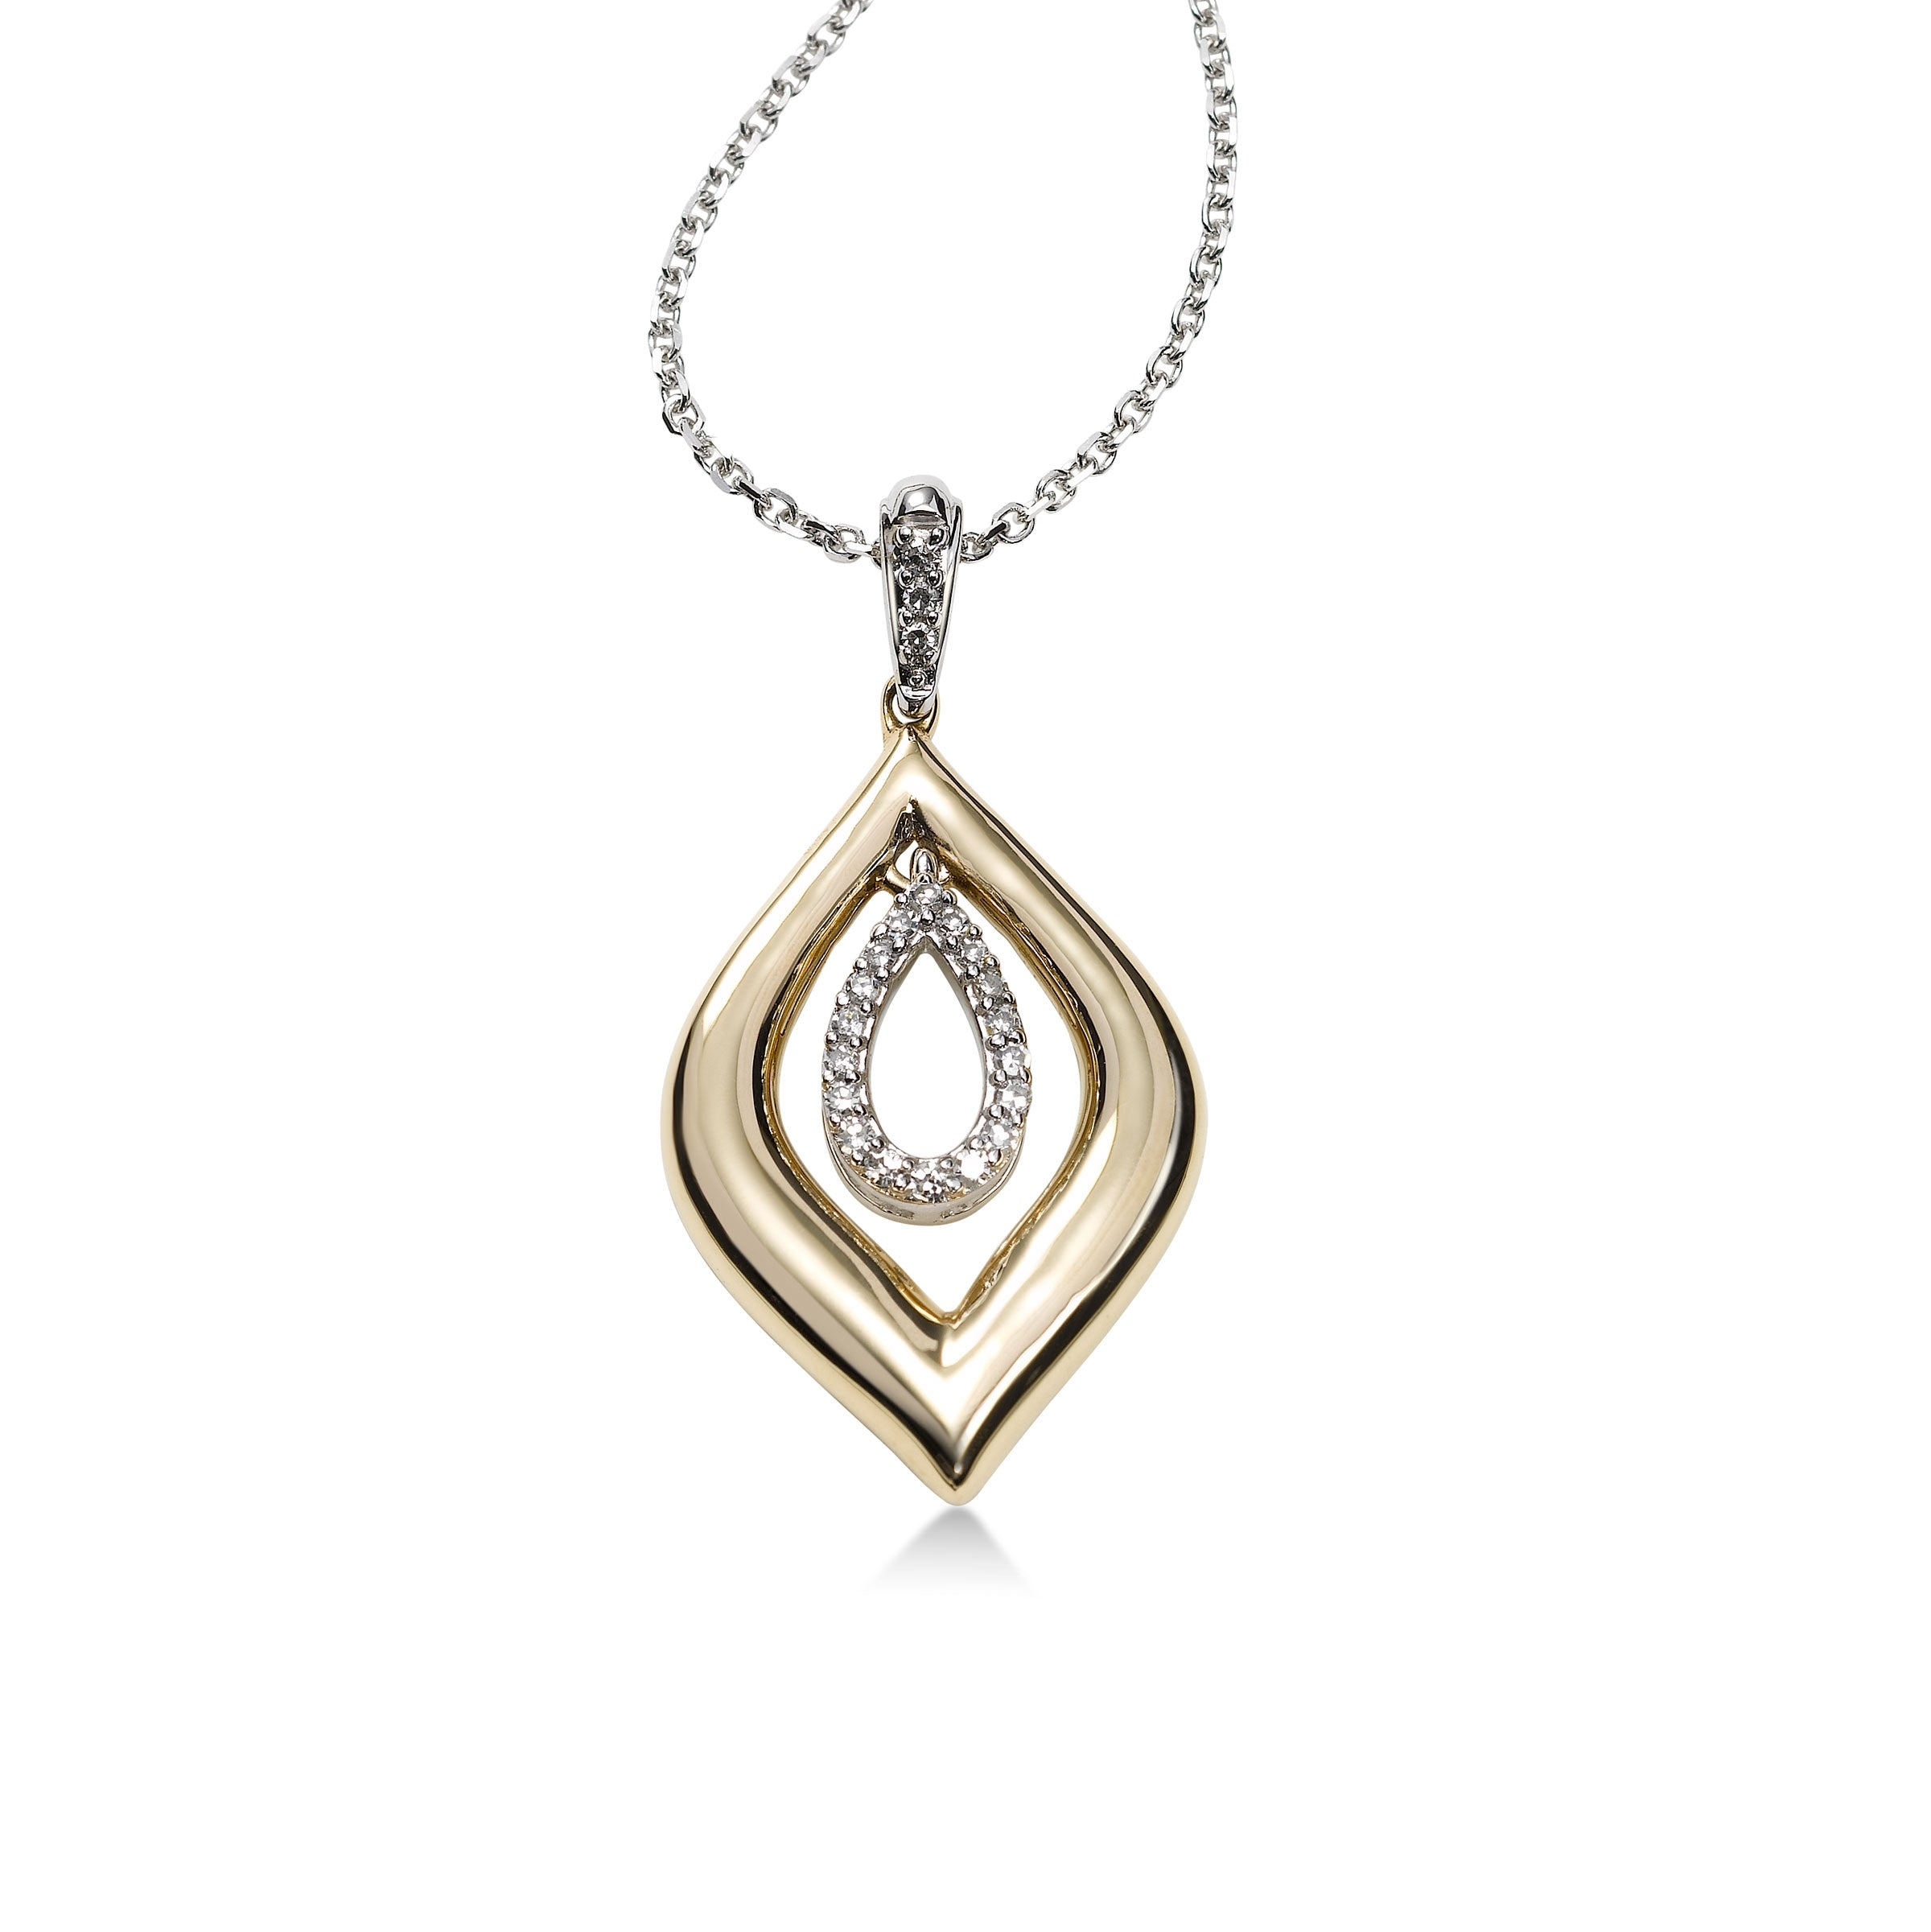 Two Tone Diamond Pendant, 14 Karat Gold